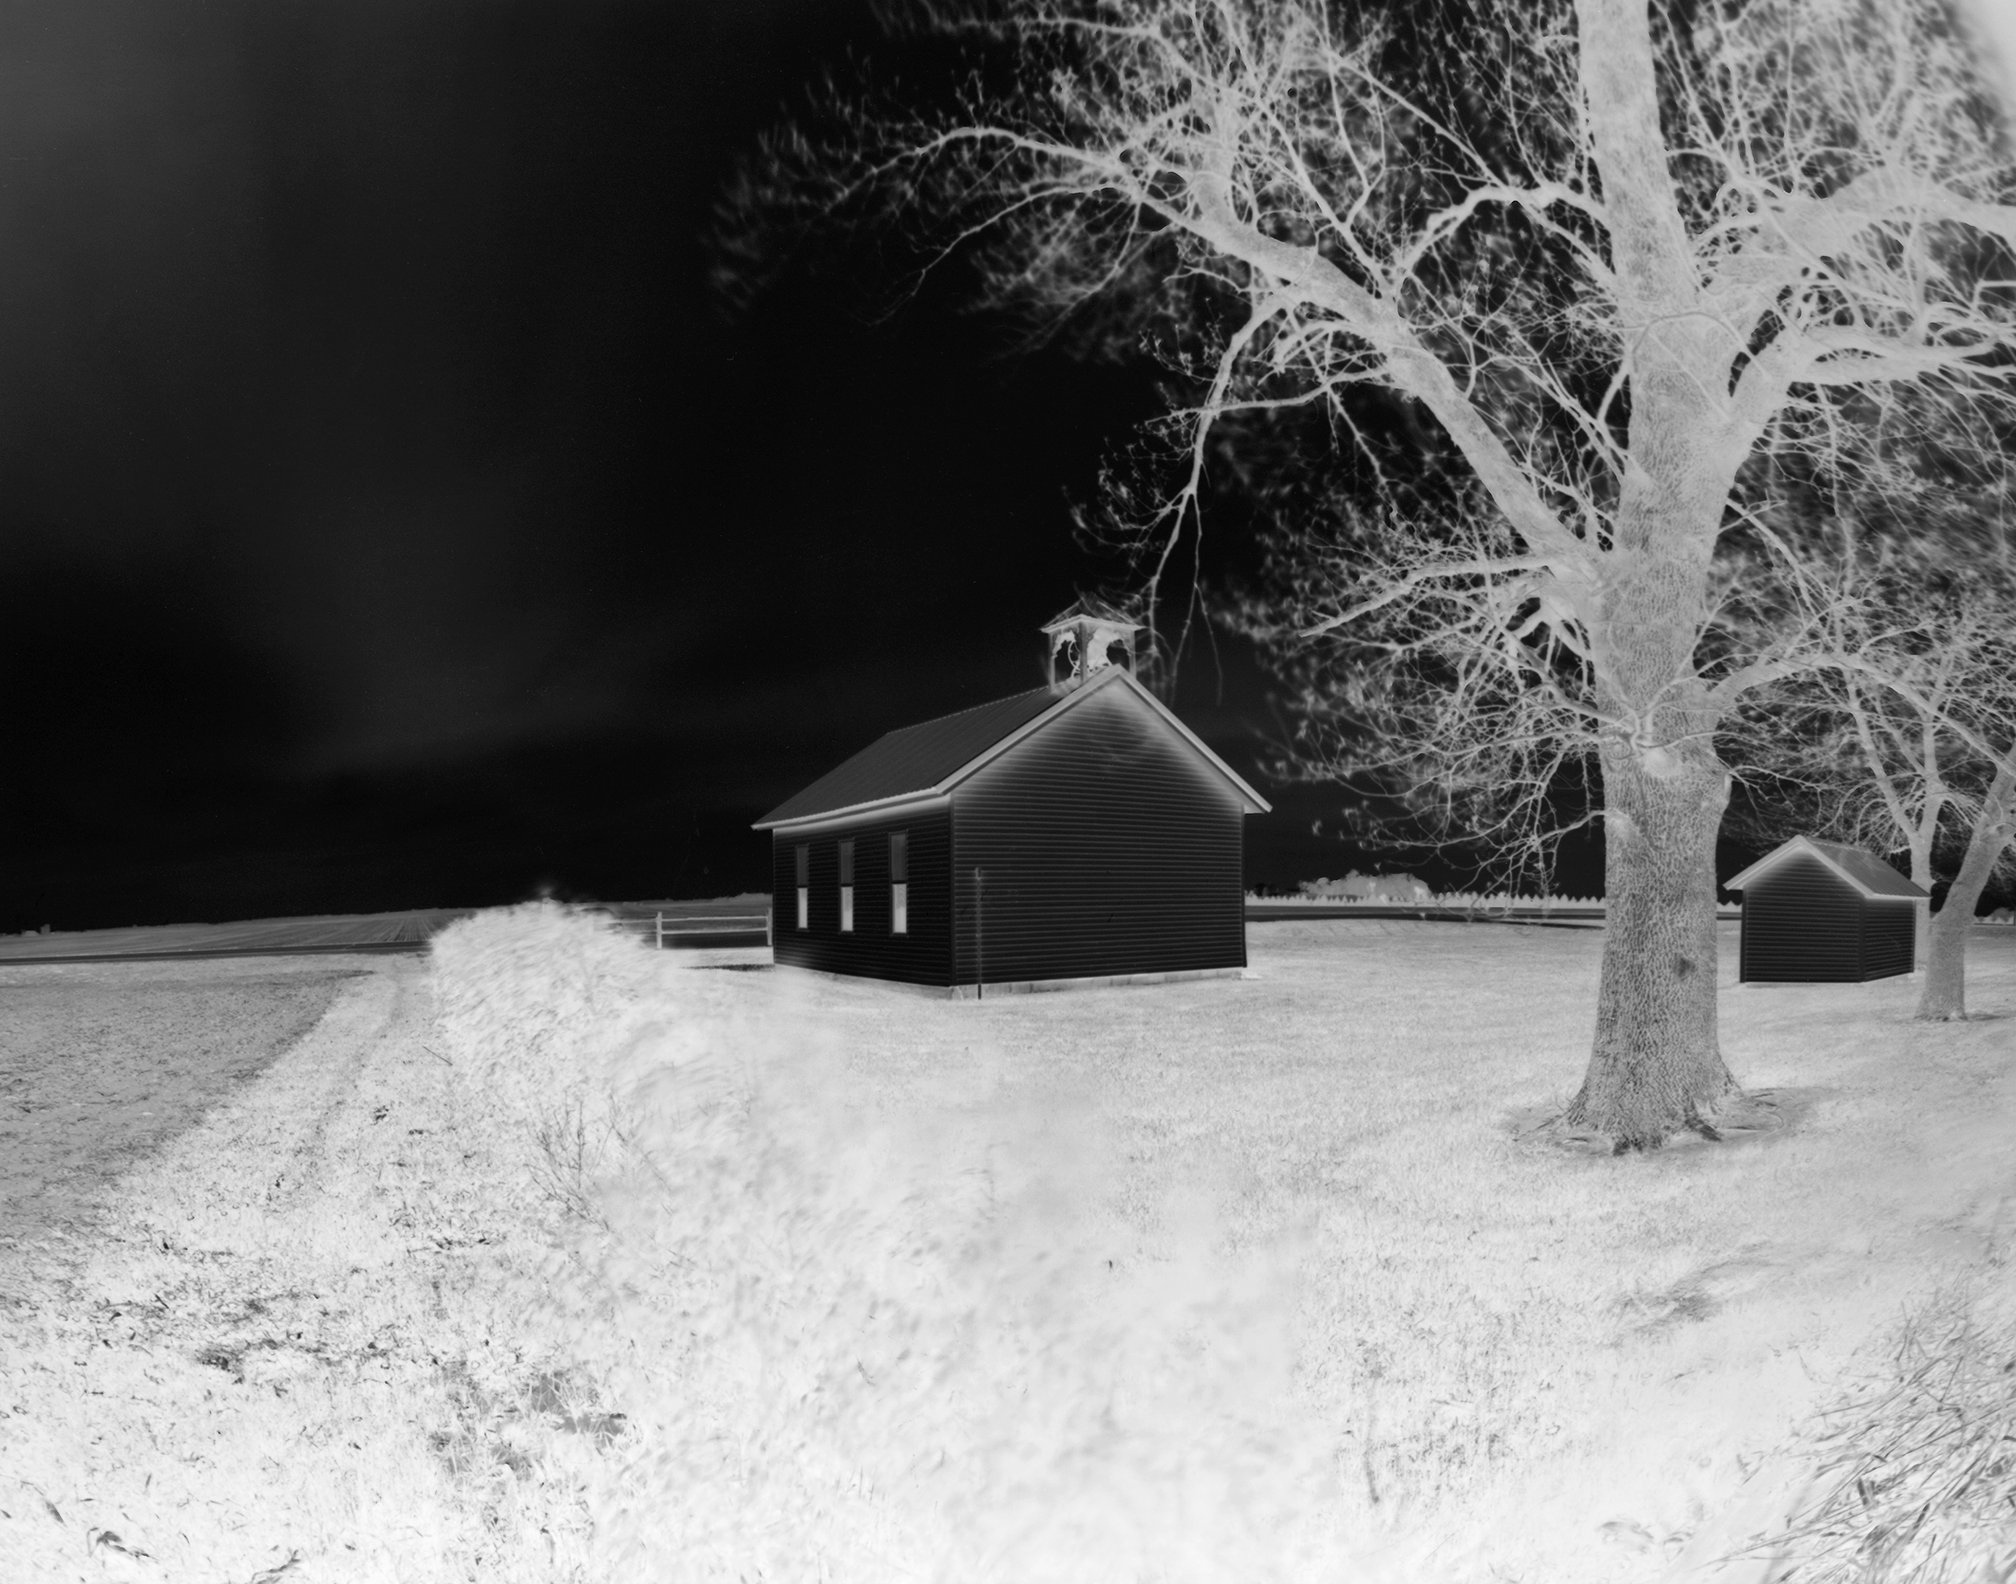 Flora - Back Yard: Photograph of the Flora Township hall and its back yard.